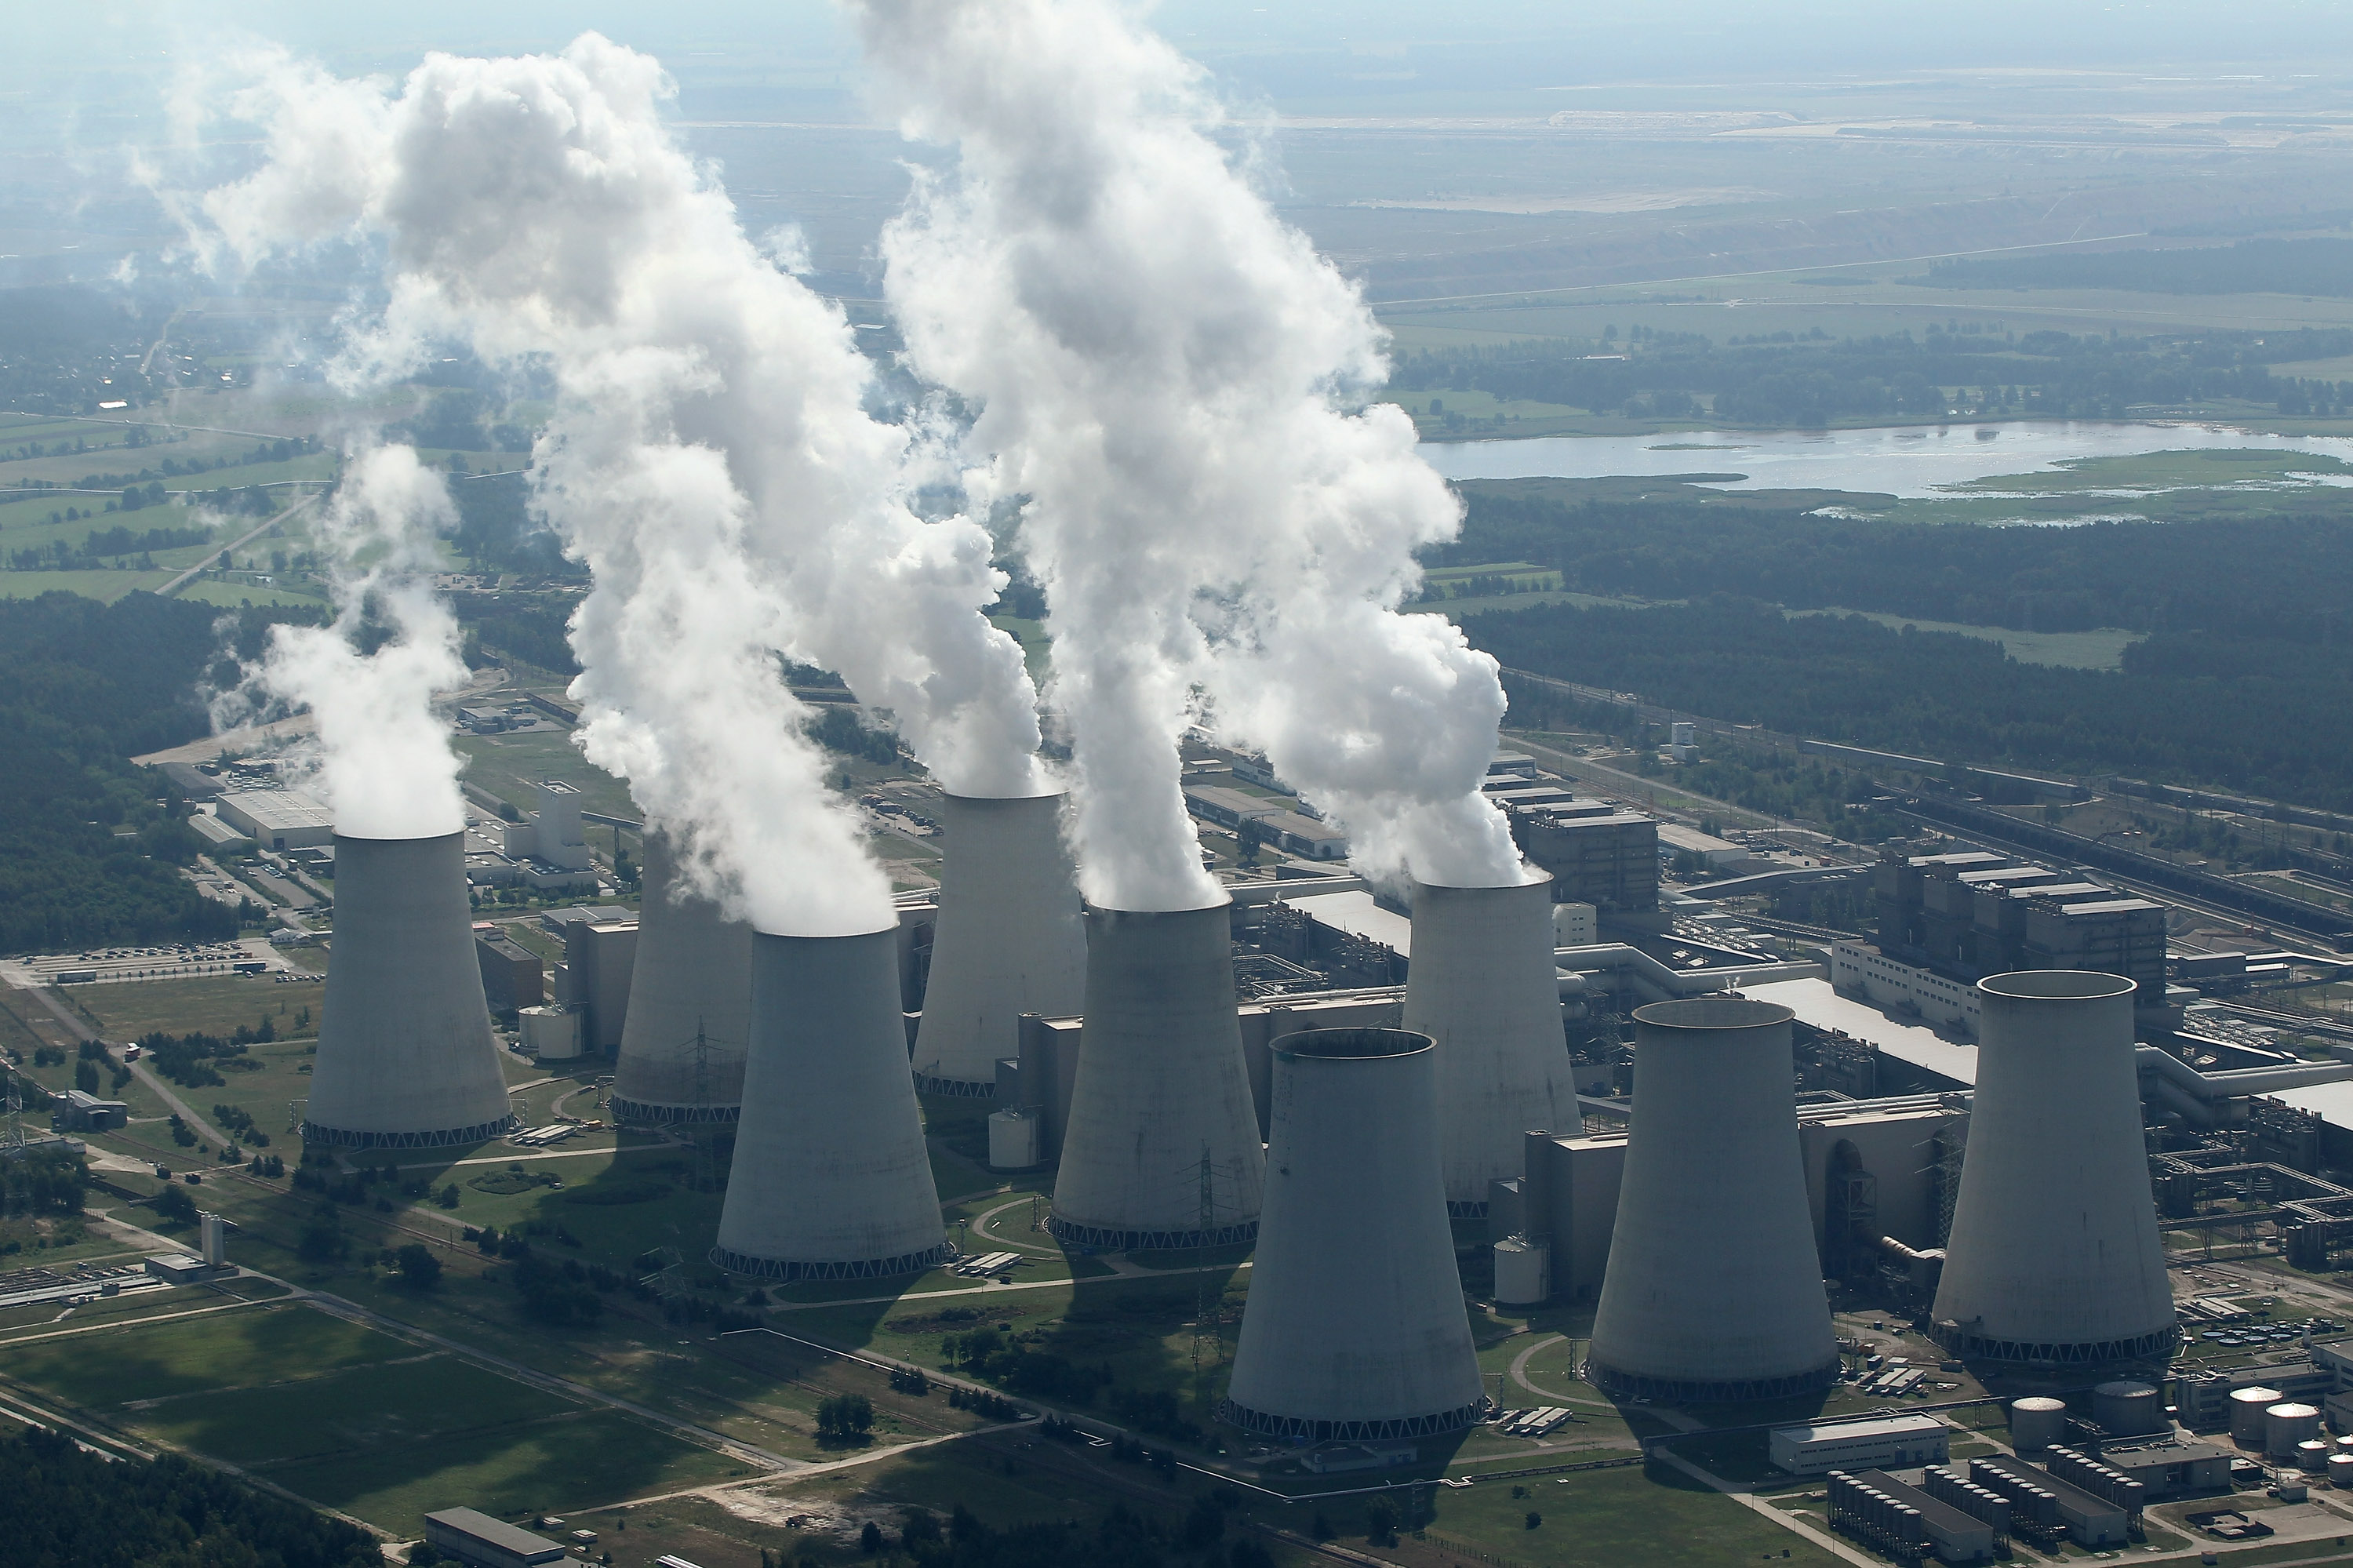 Global Warming Causes Even More Emissions Study Finds